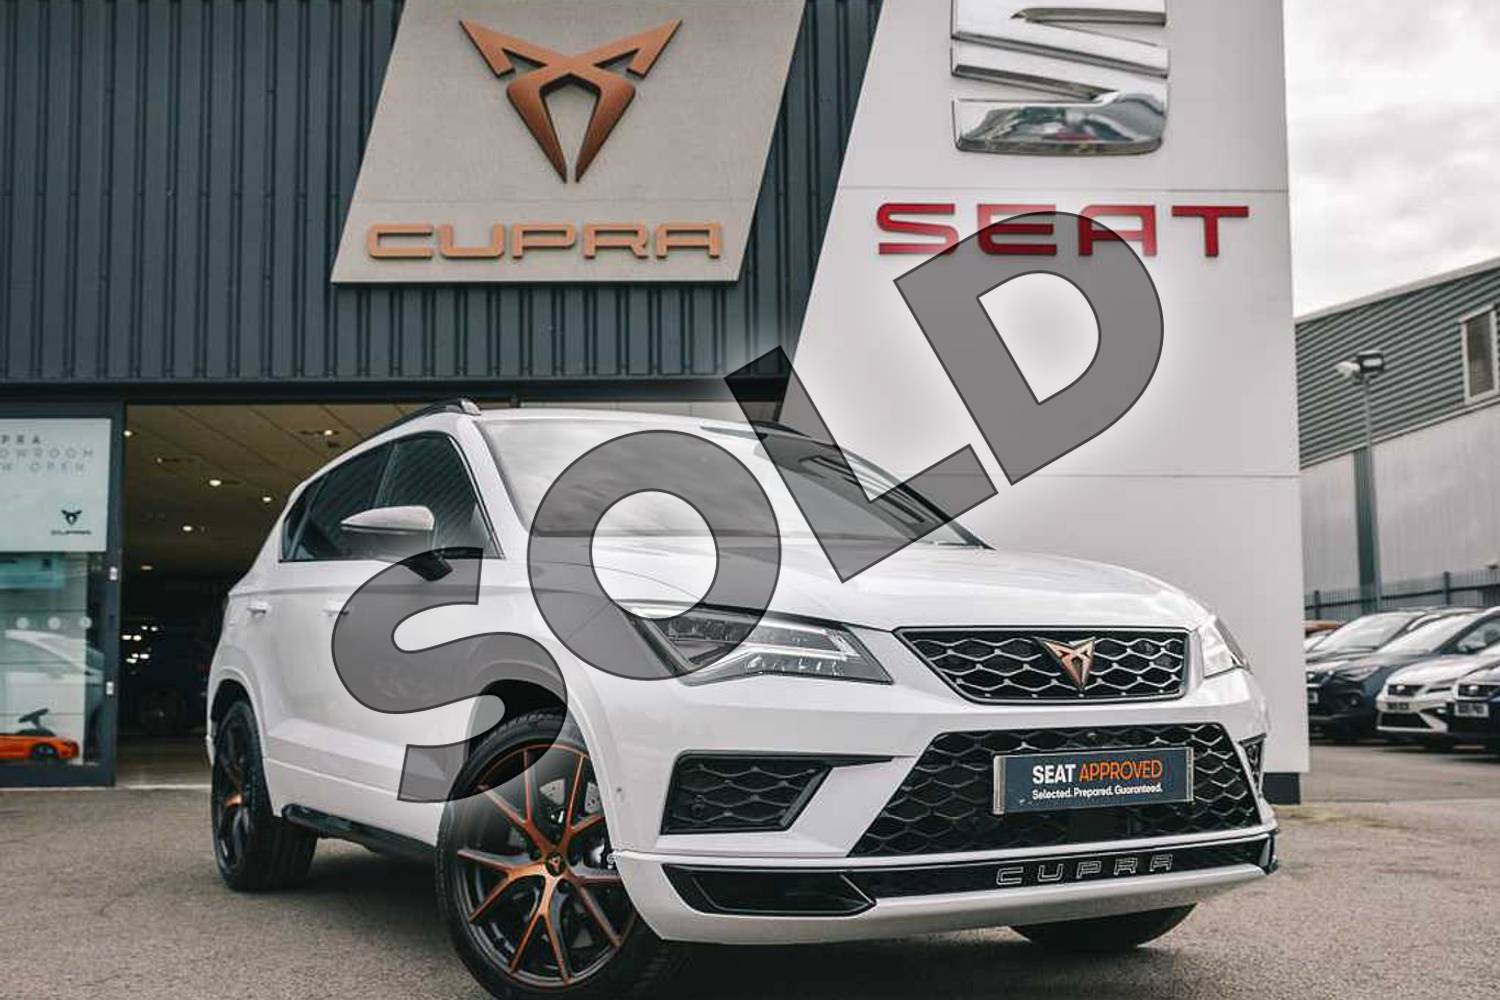 2019 CUPRA Ateca Estate 2.0 TSI 5dr DSG 4Drive (Design pack) in White at Listers SEAT Coventry